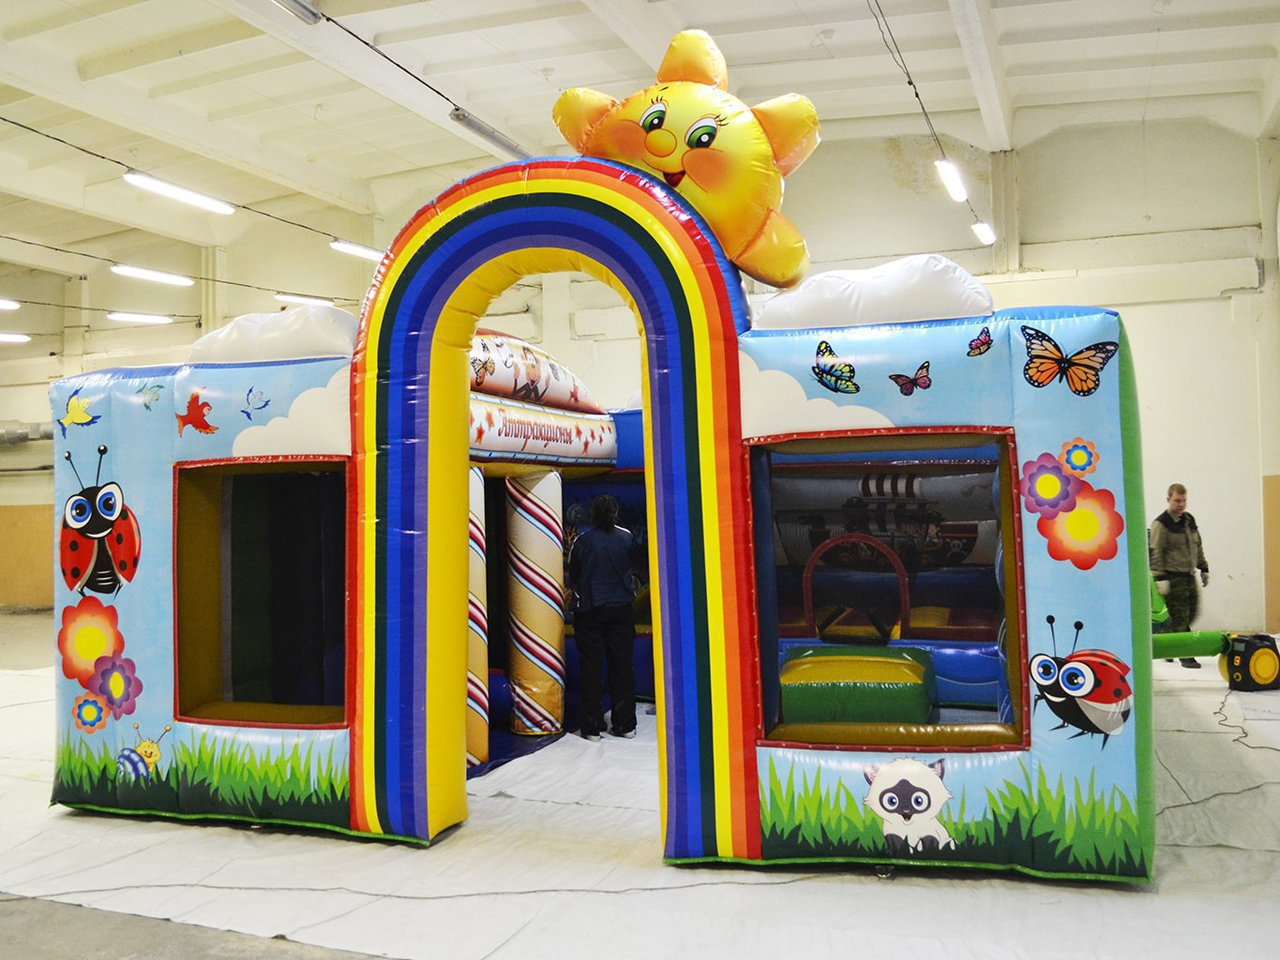 Children's inflatable play center of several rooms